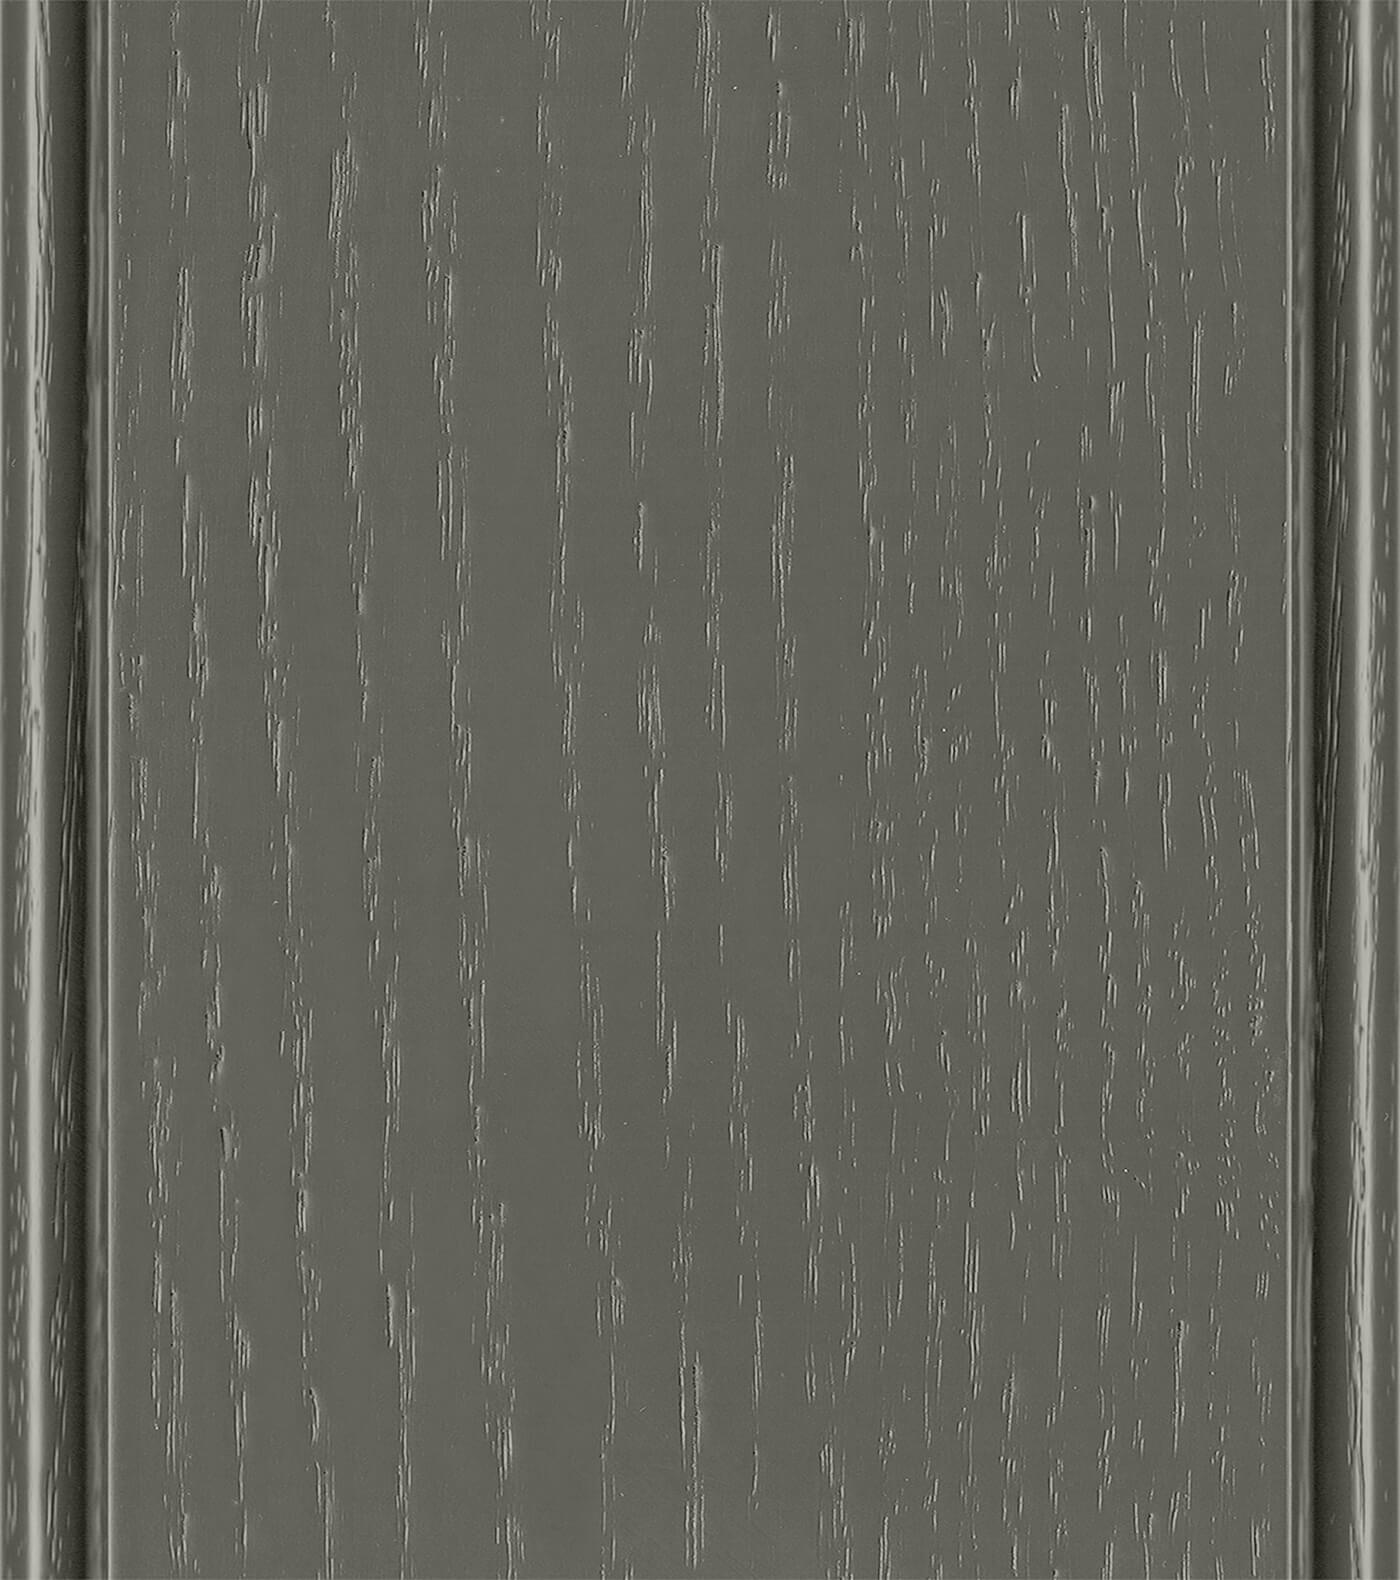 Cast Iron SW6202 Curate Color on Red Oak or Quarter-Sawn Red Oak